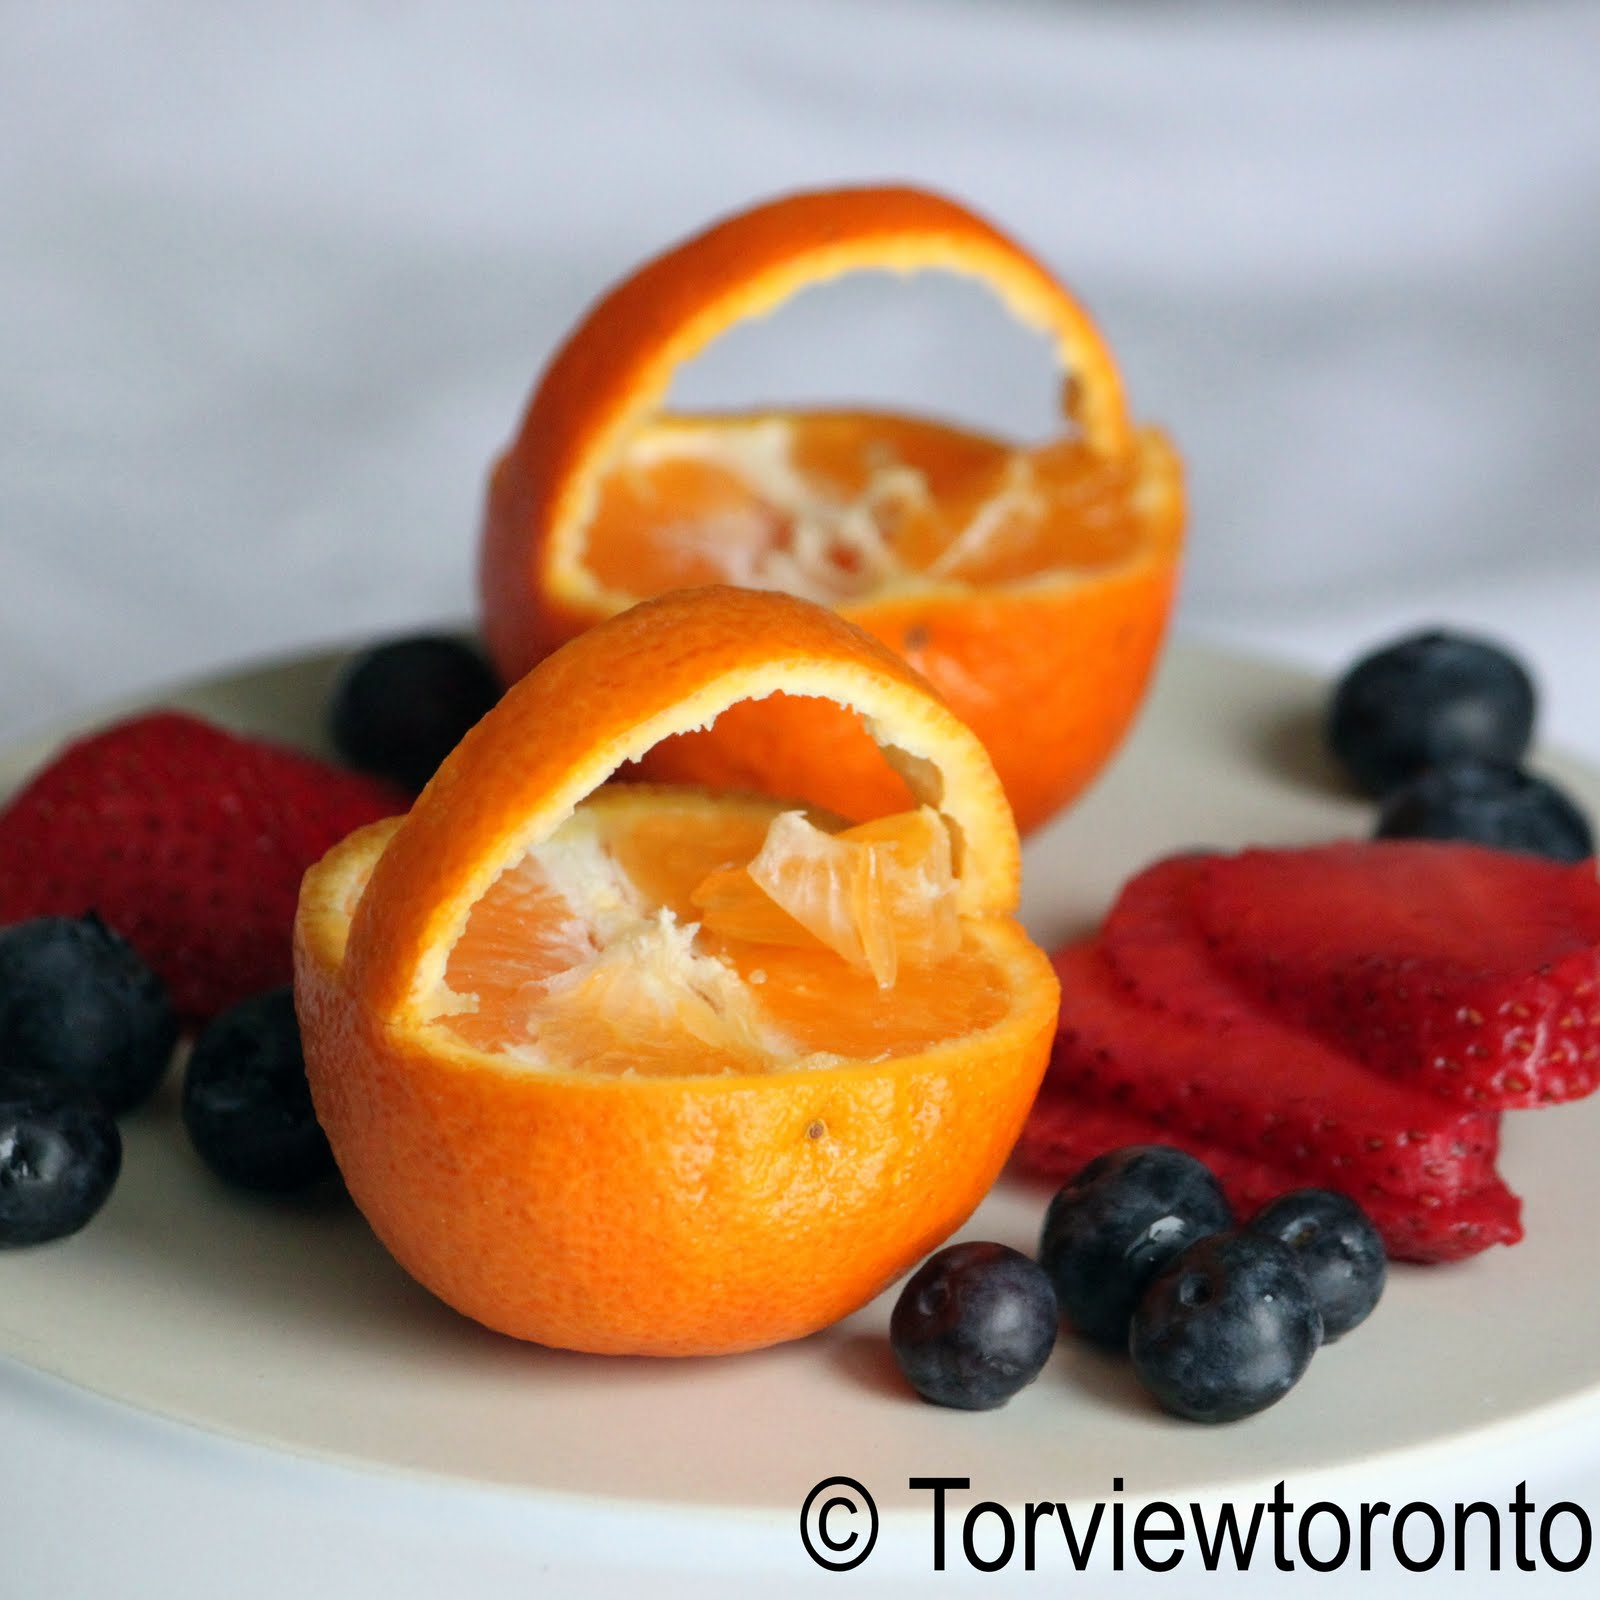 Torviewtoronto: Orange basket